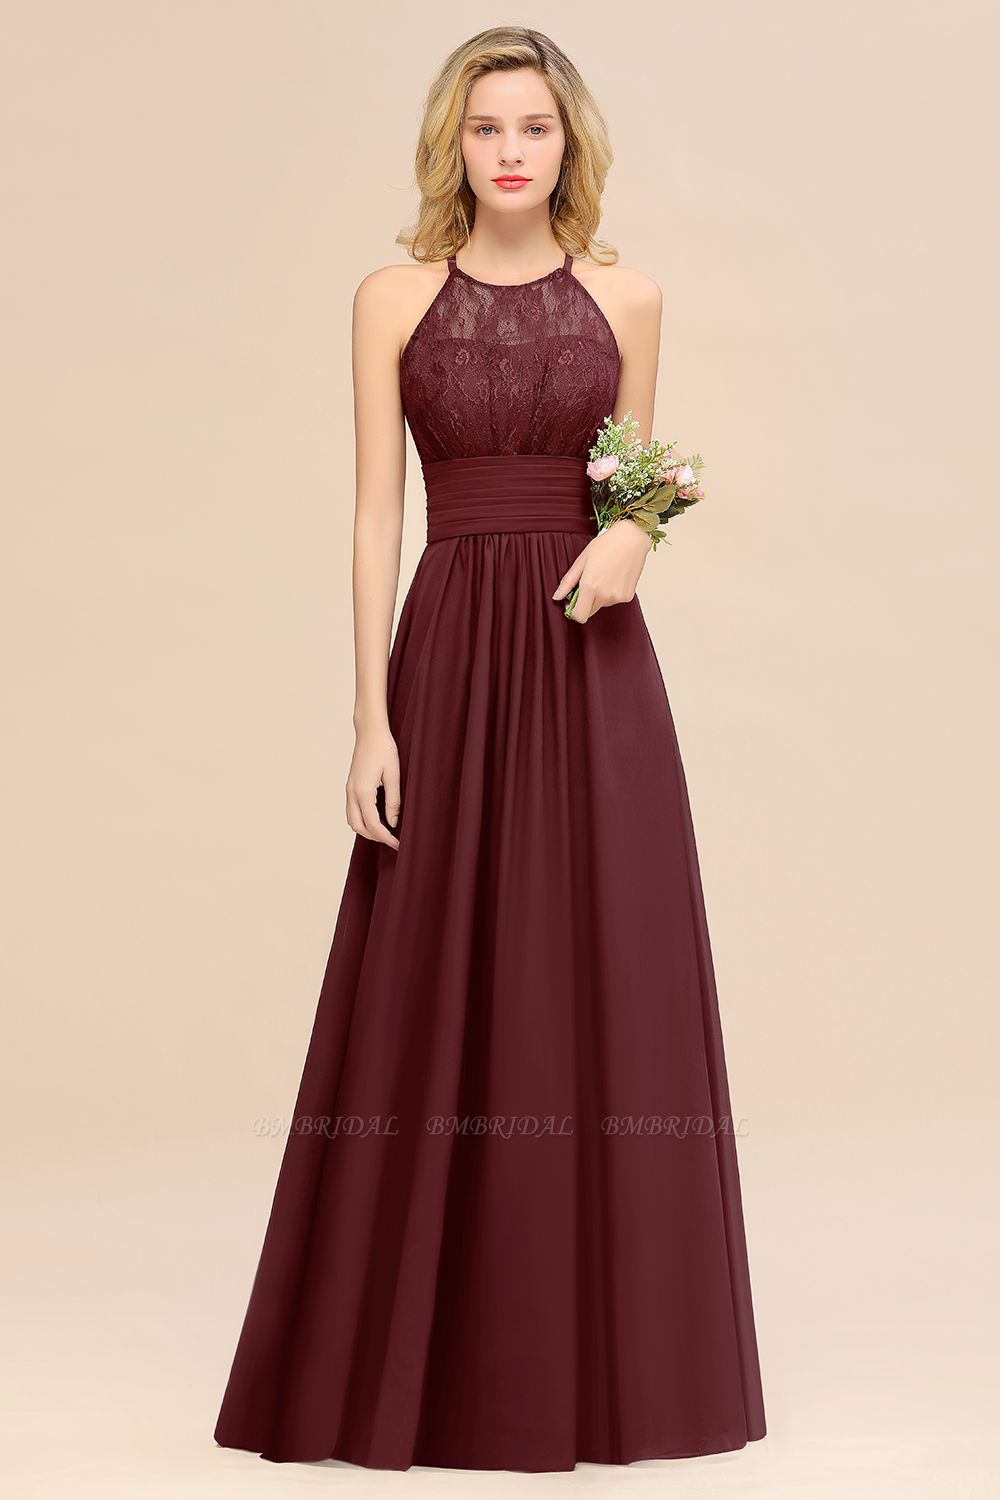 BMbridal Elegant Halter Ruffles Sleeveless Grape Lace Bridesmaid Dresses Affordable